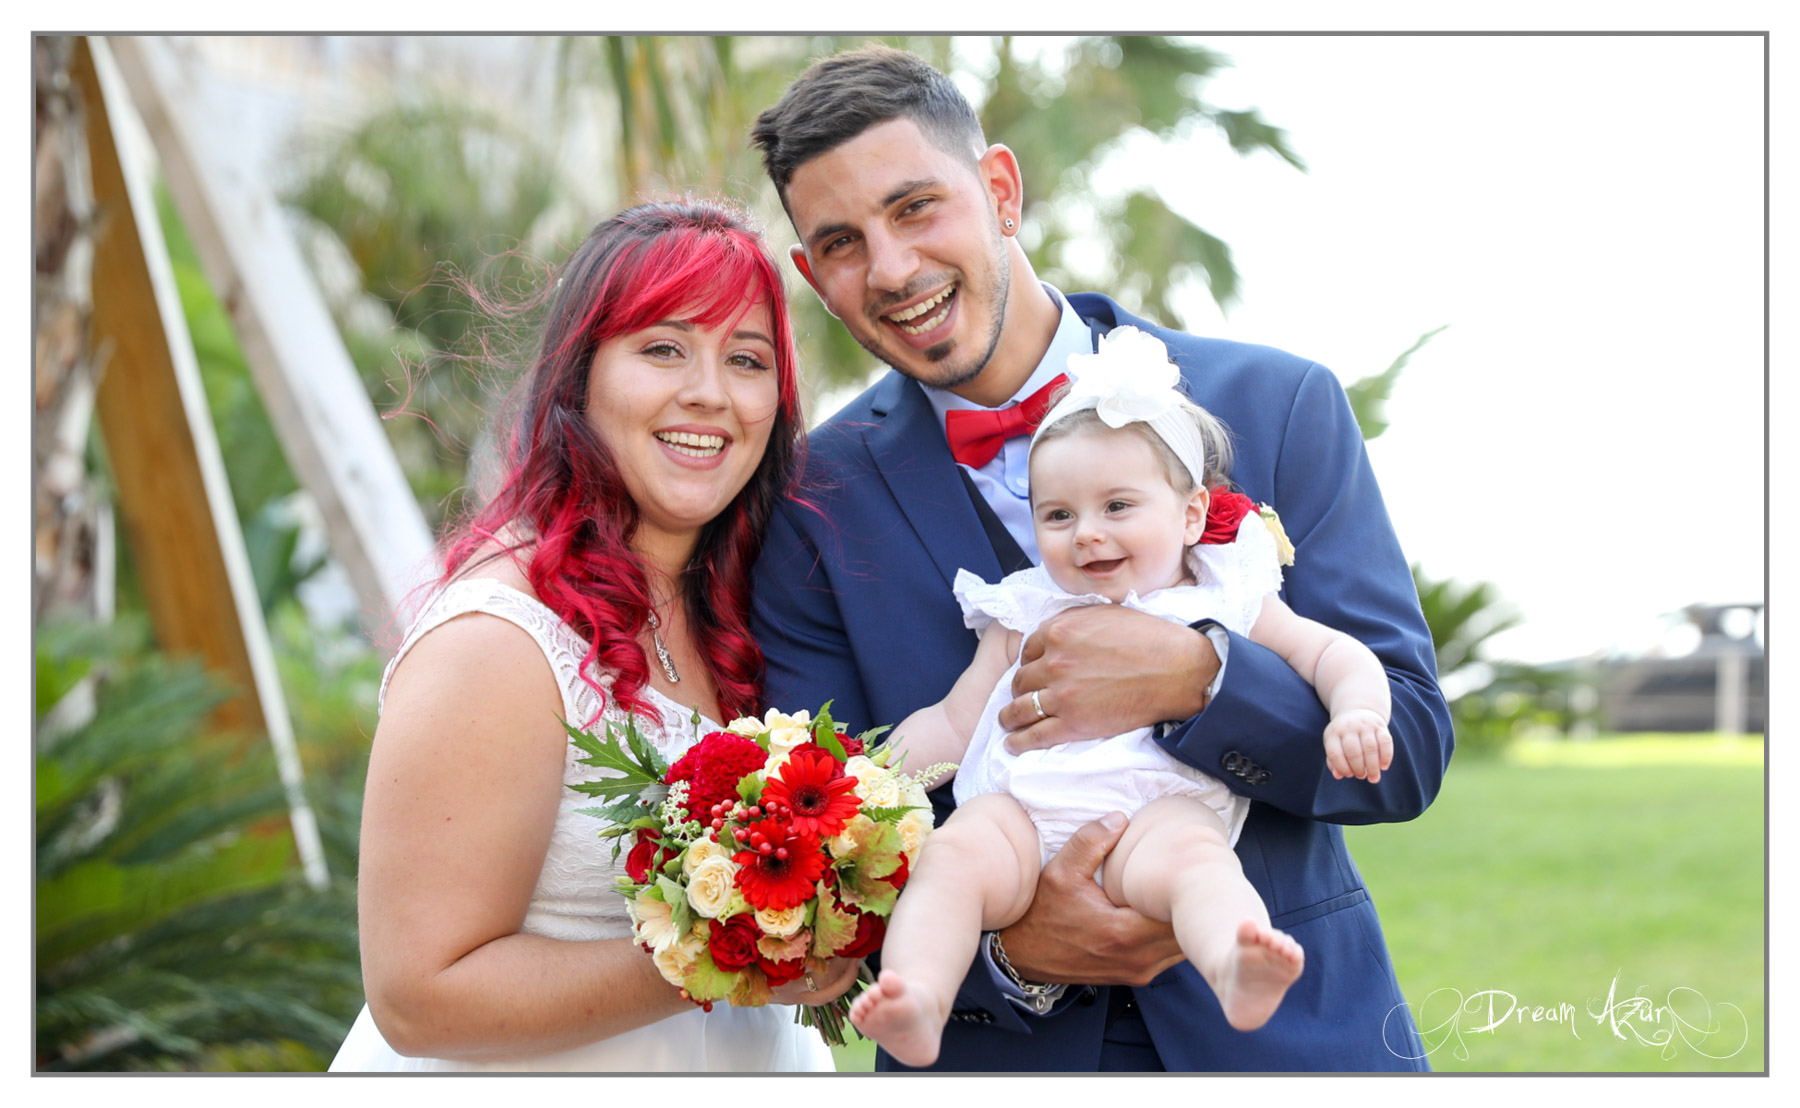 190824COMPO-Mariage-Cindy-et-Anthony-12